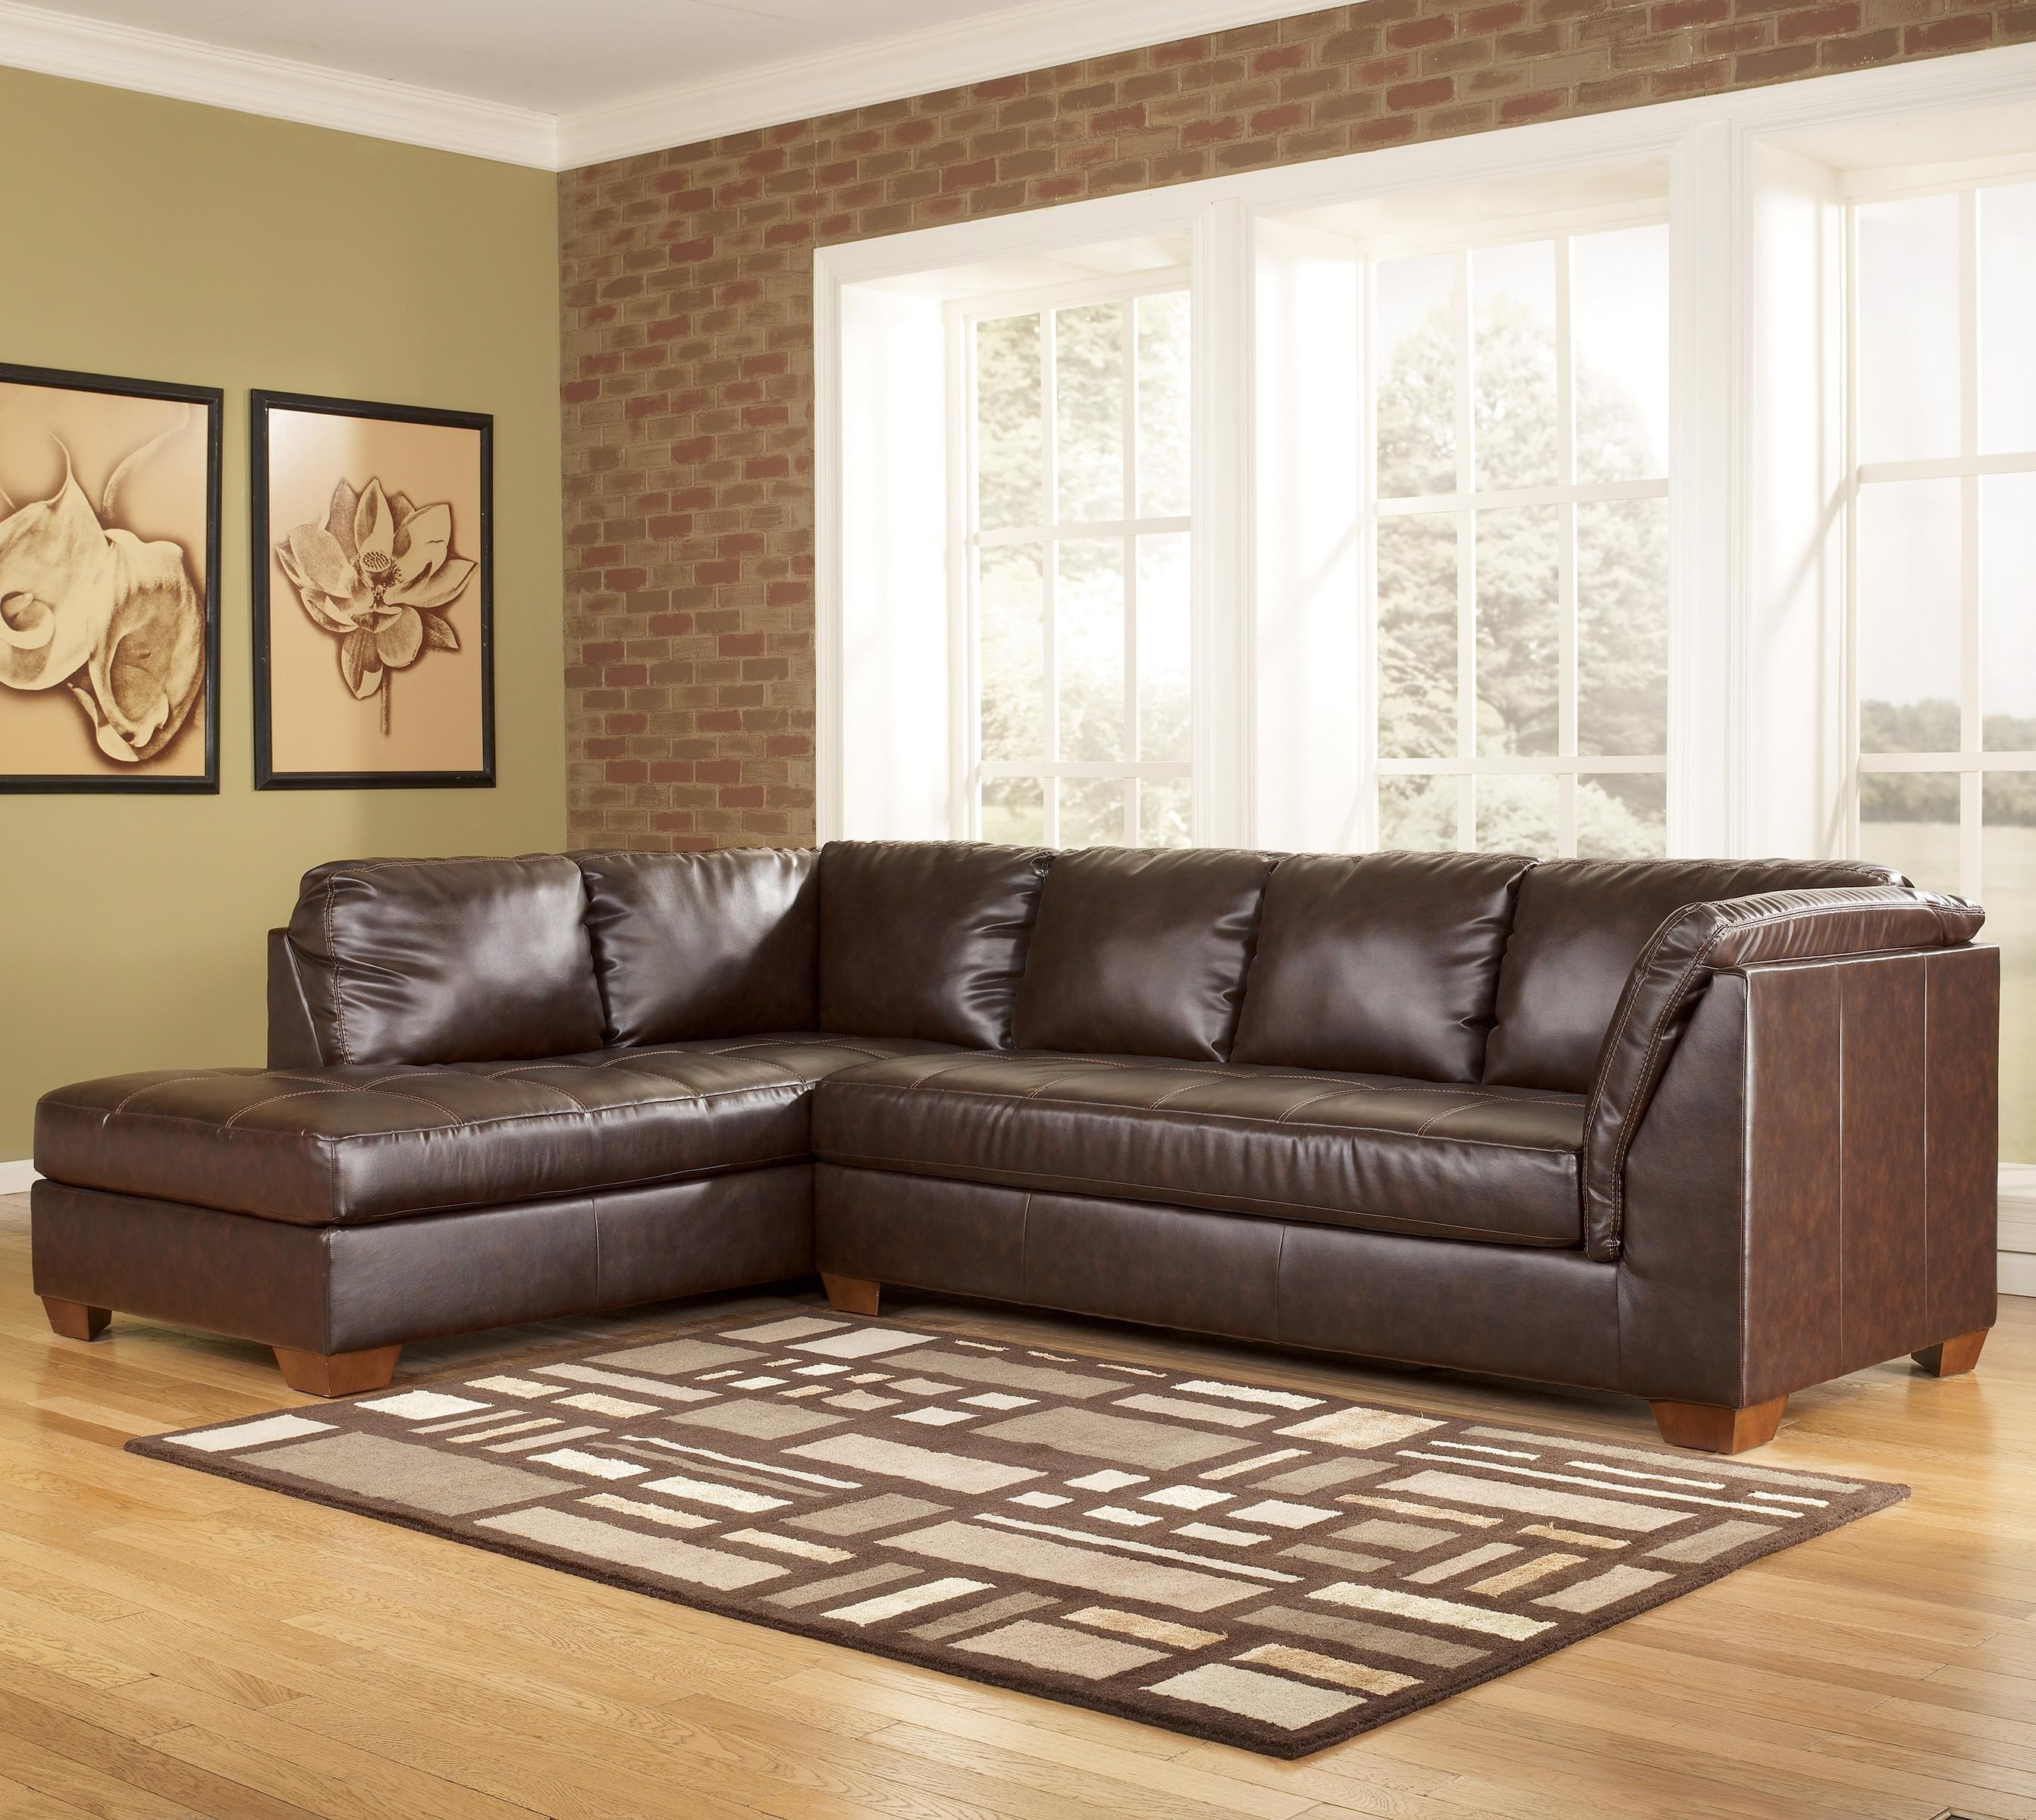 Ashley furniture leather sectional roselawnlutheran for Ashley encore grain chaise